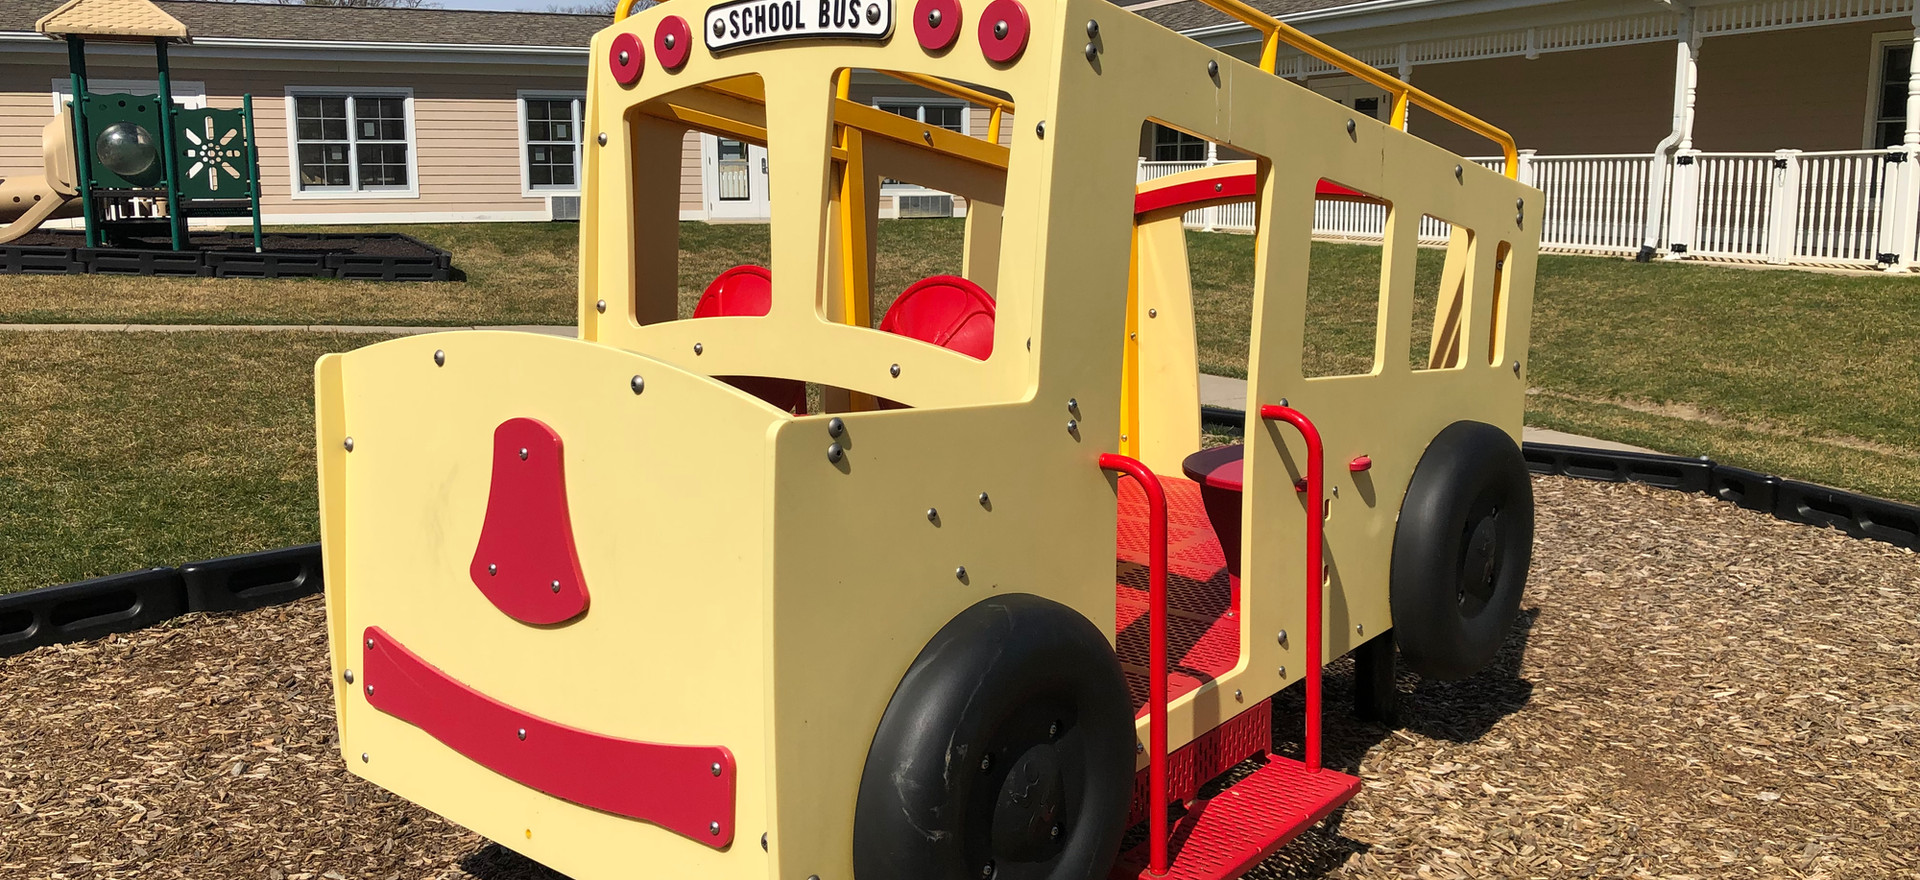 Little Lambs School Bus